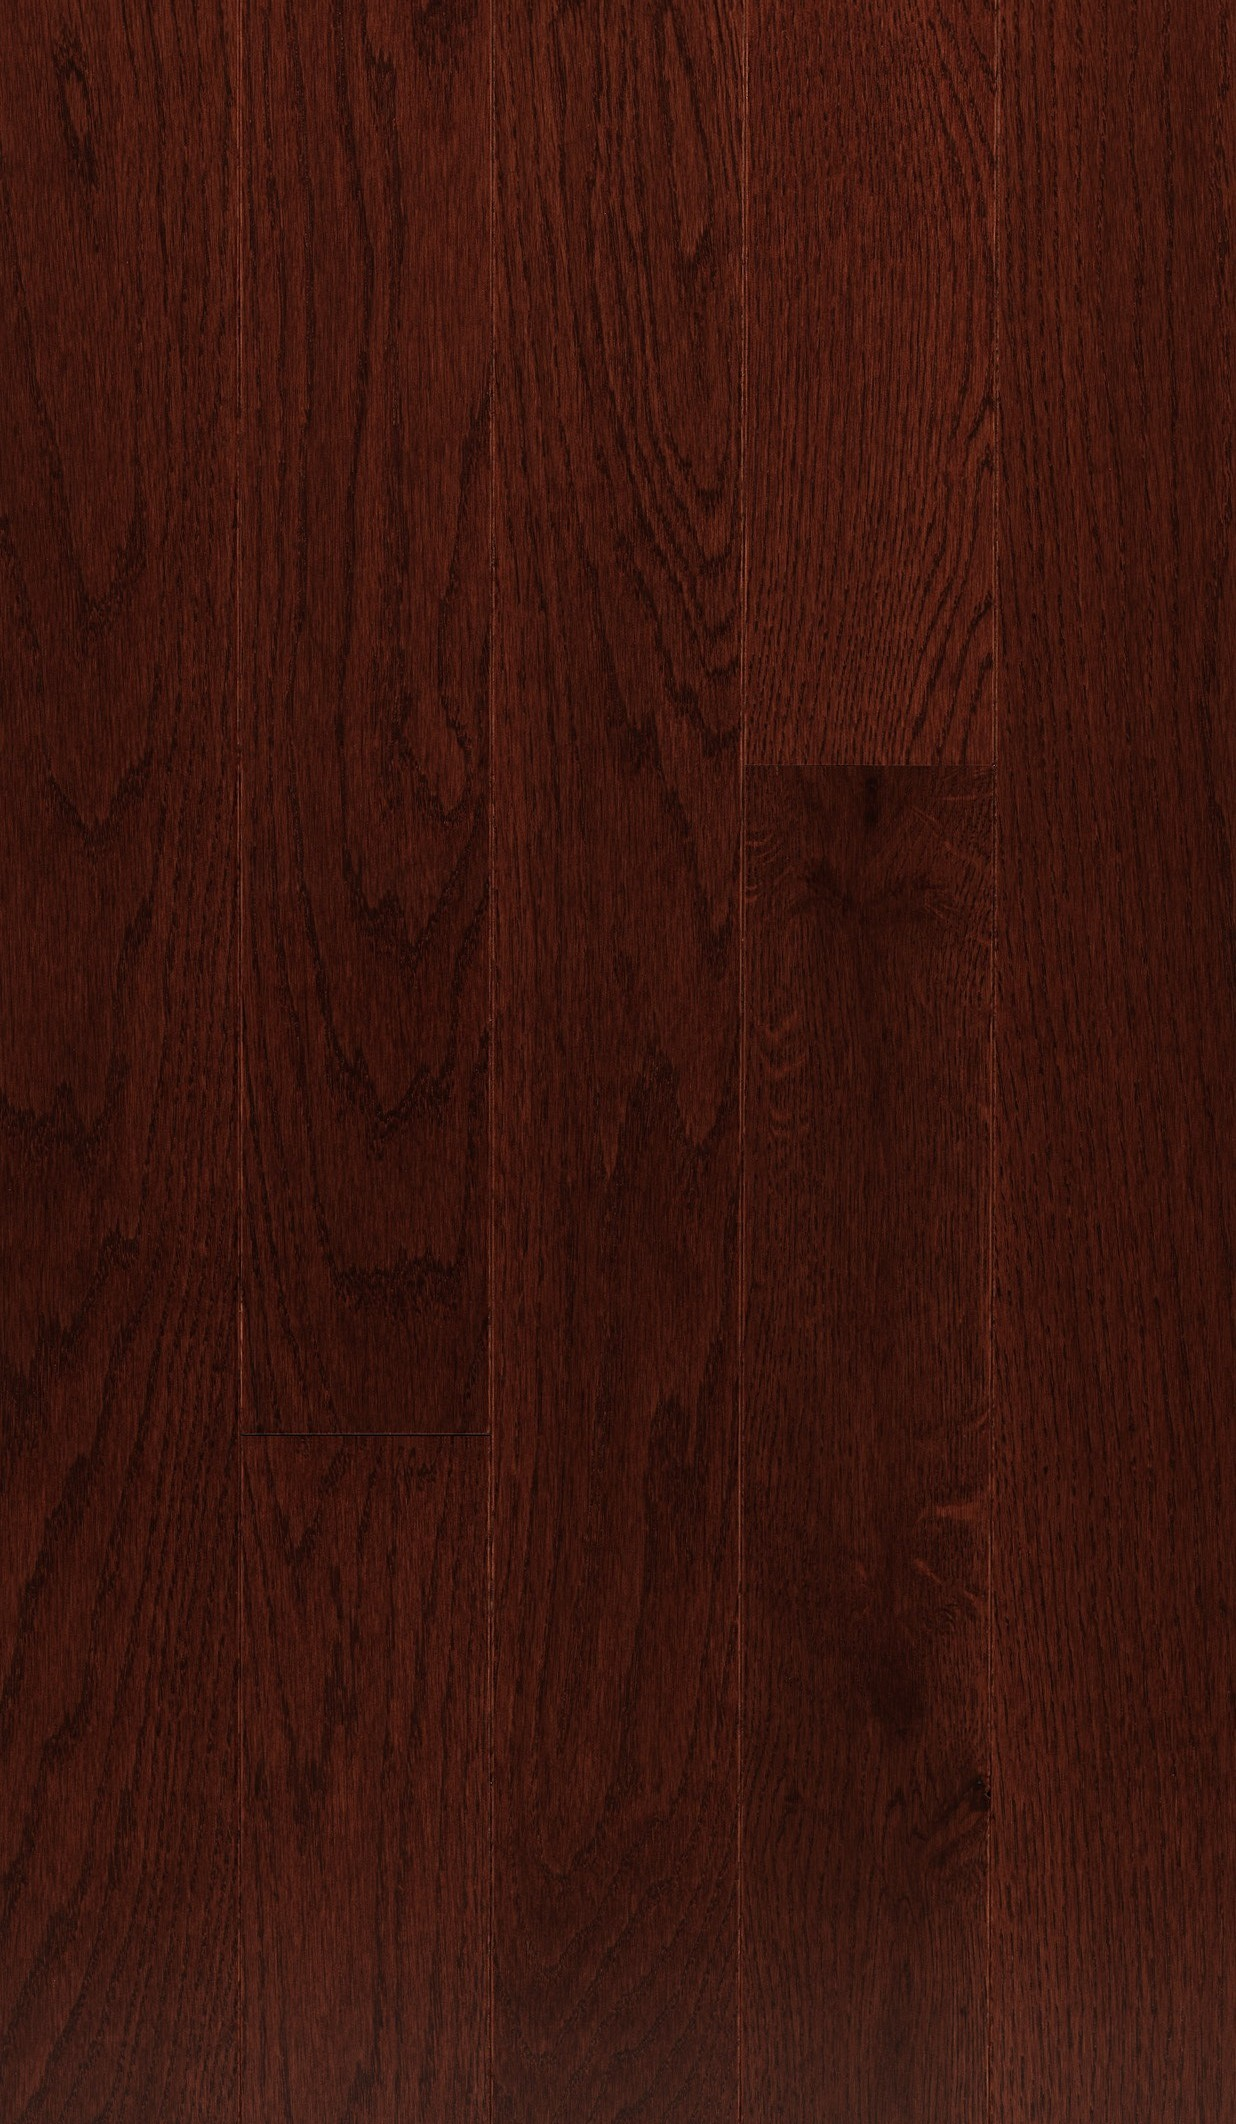 Cherry Wood Floor Texture Home Design Mannahattaus